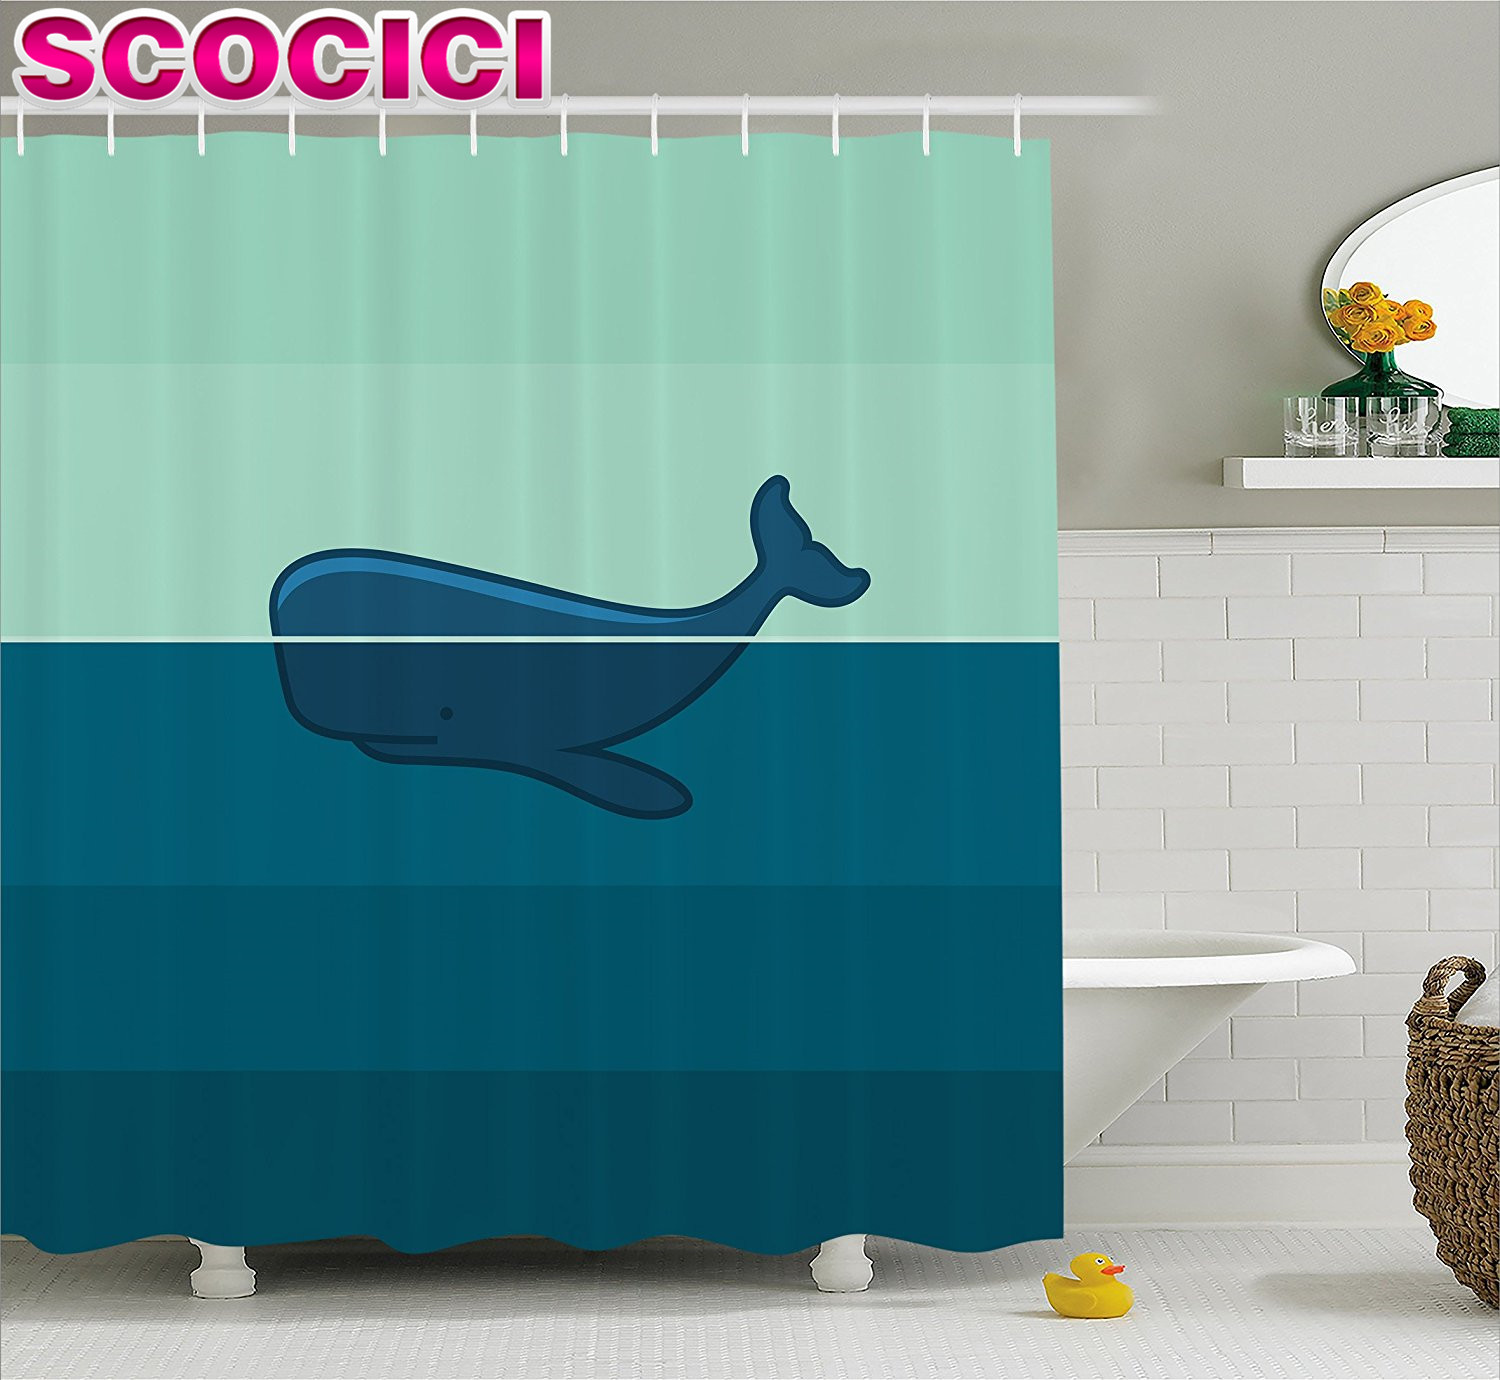 Whale Decor Shower Curtain Big Blue Whale Half Of It Swimming On The Top Of The Ocean Image Fabric Bathroom Decor Set Light Blue